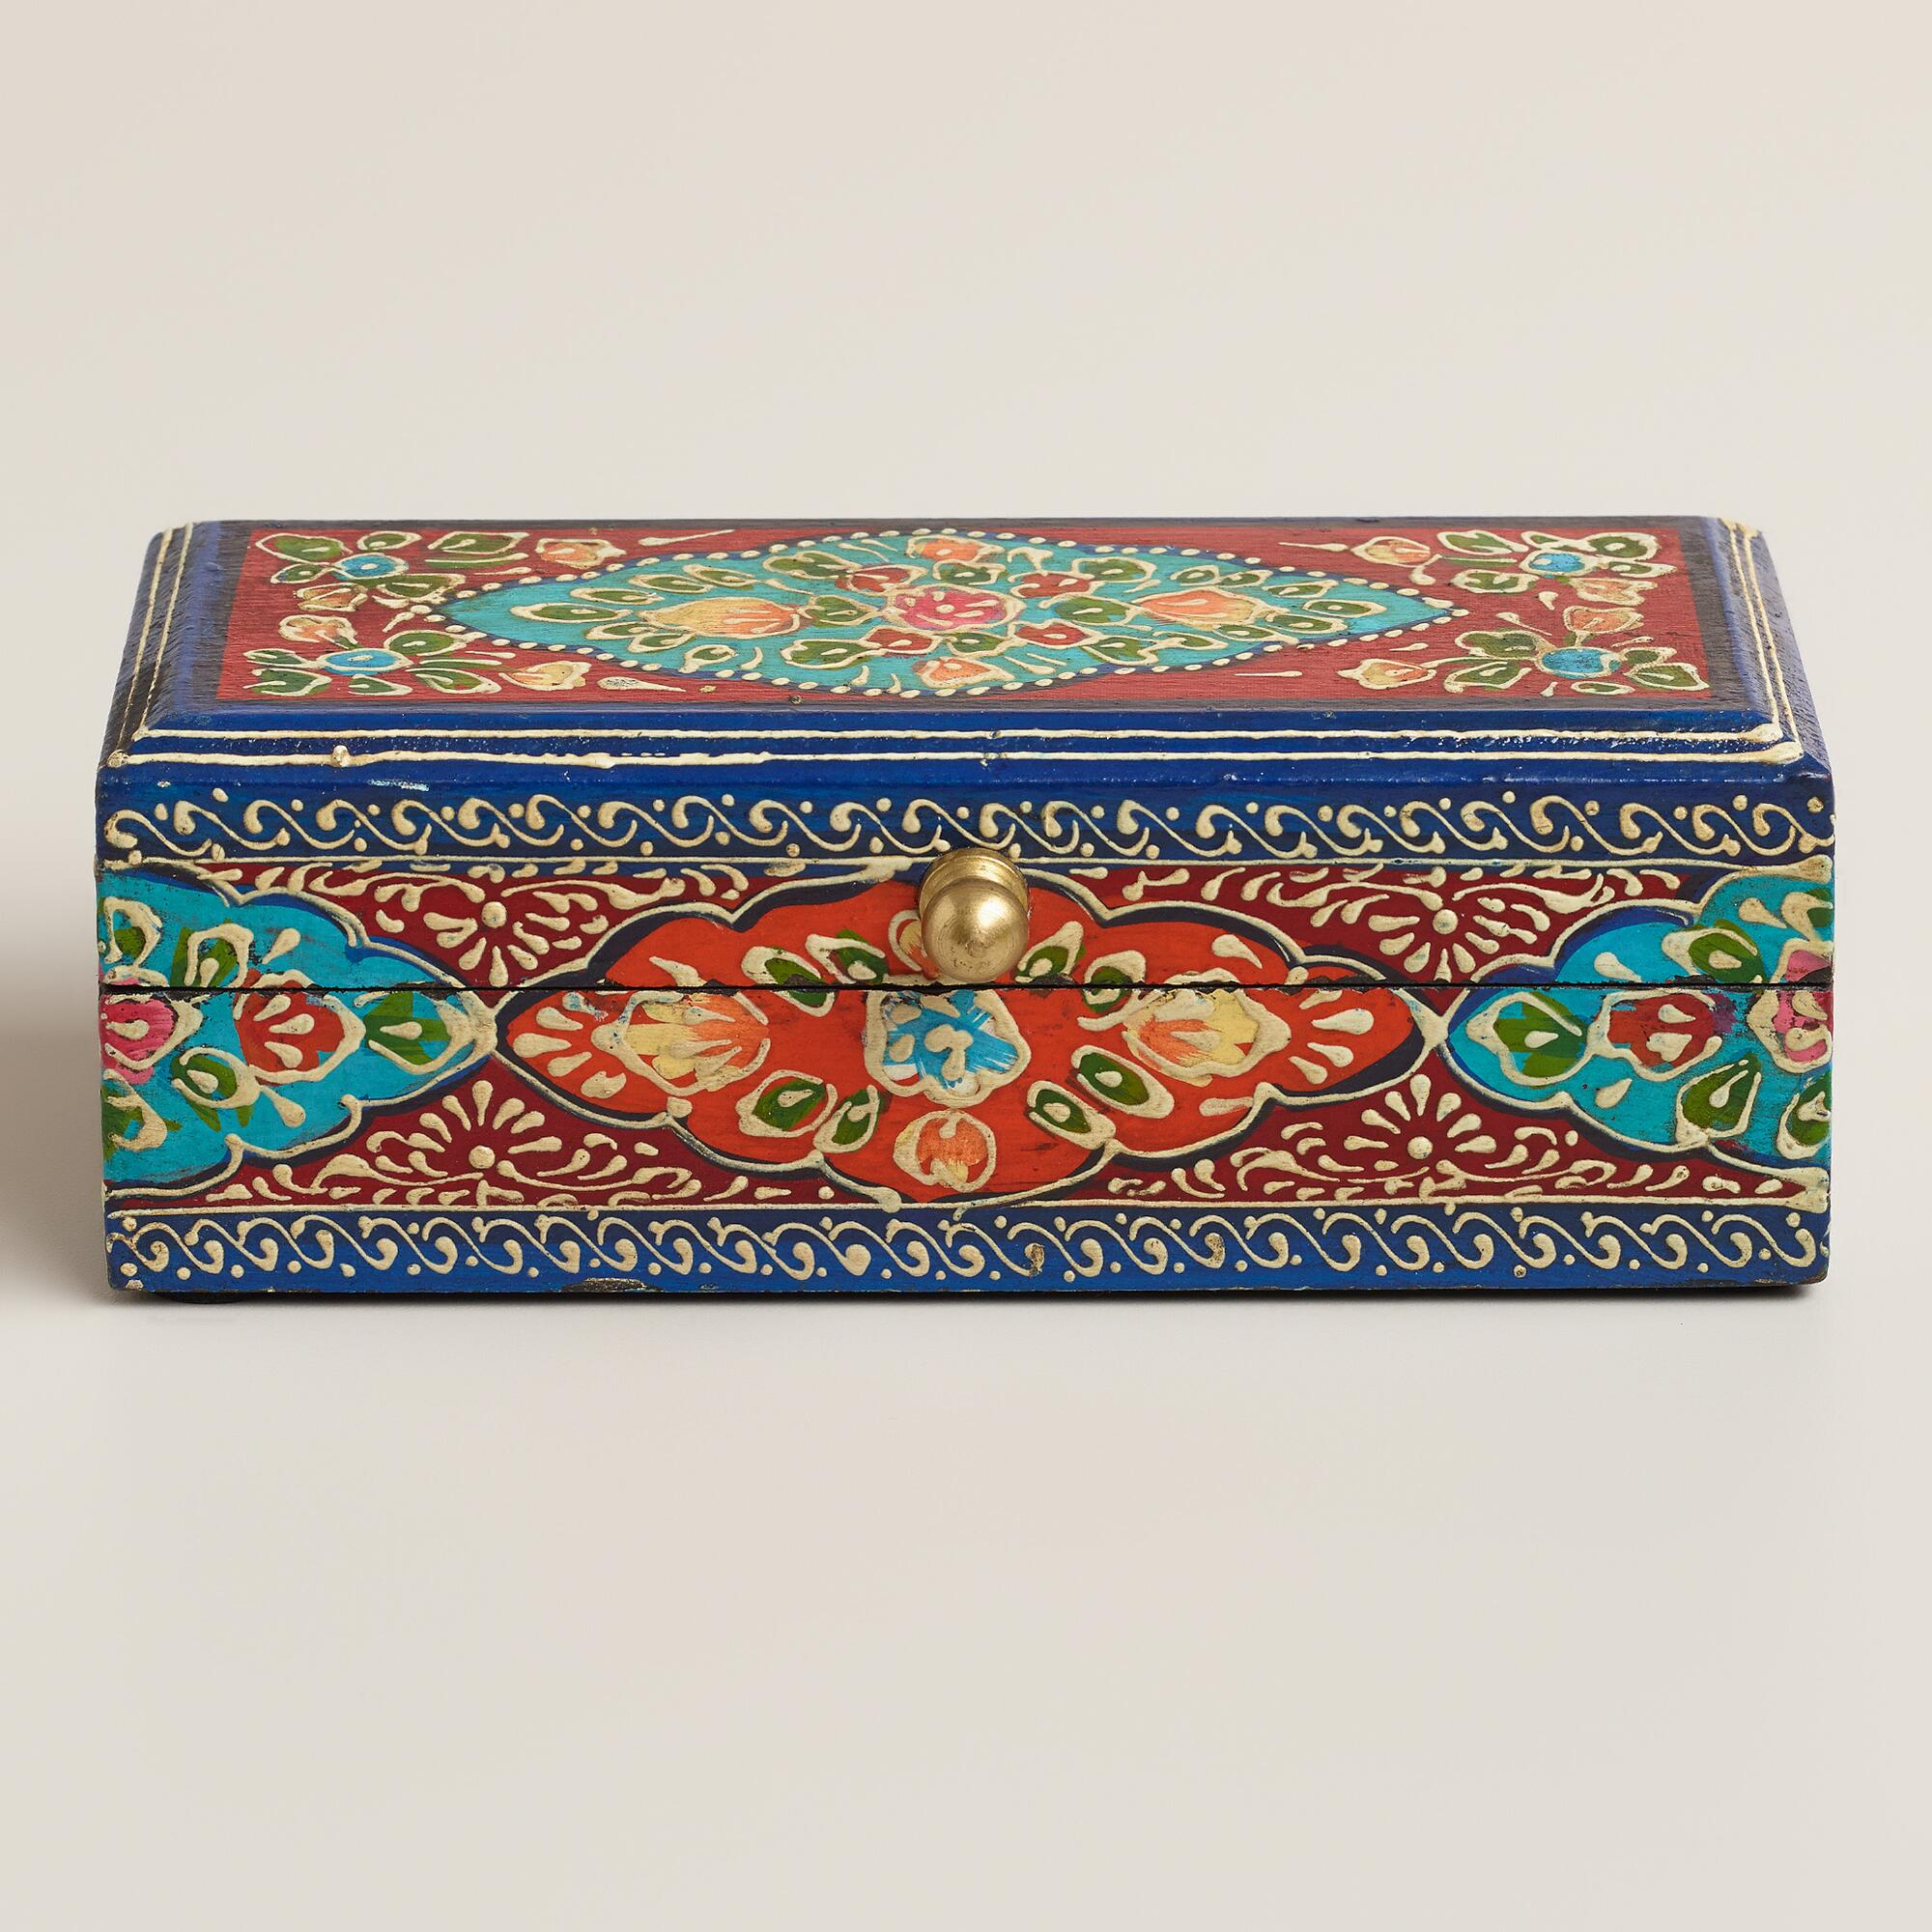 Small Hand Painted Multicolored Wood Chest World Market. Full resolution‎  snapshot, nominally Width 2000 Height 2000 pixels, snapshot with #AB3320.